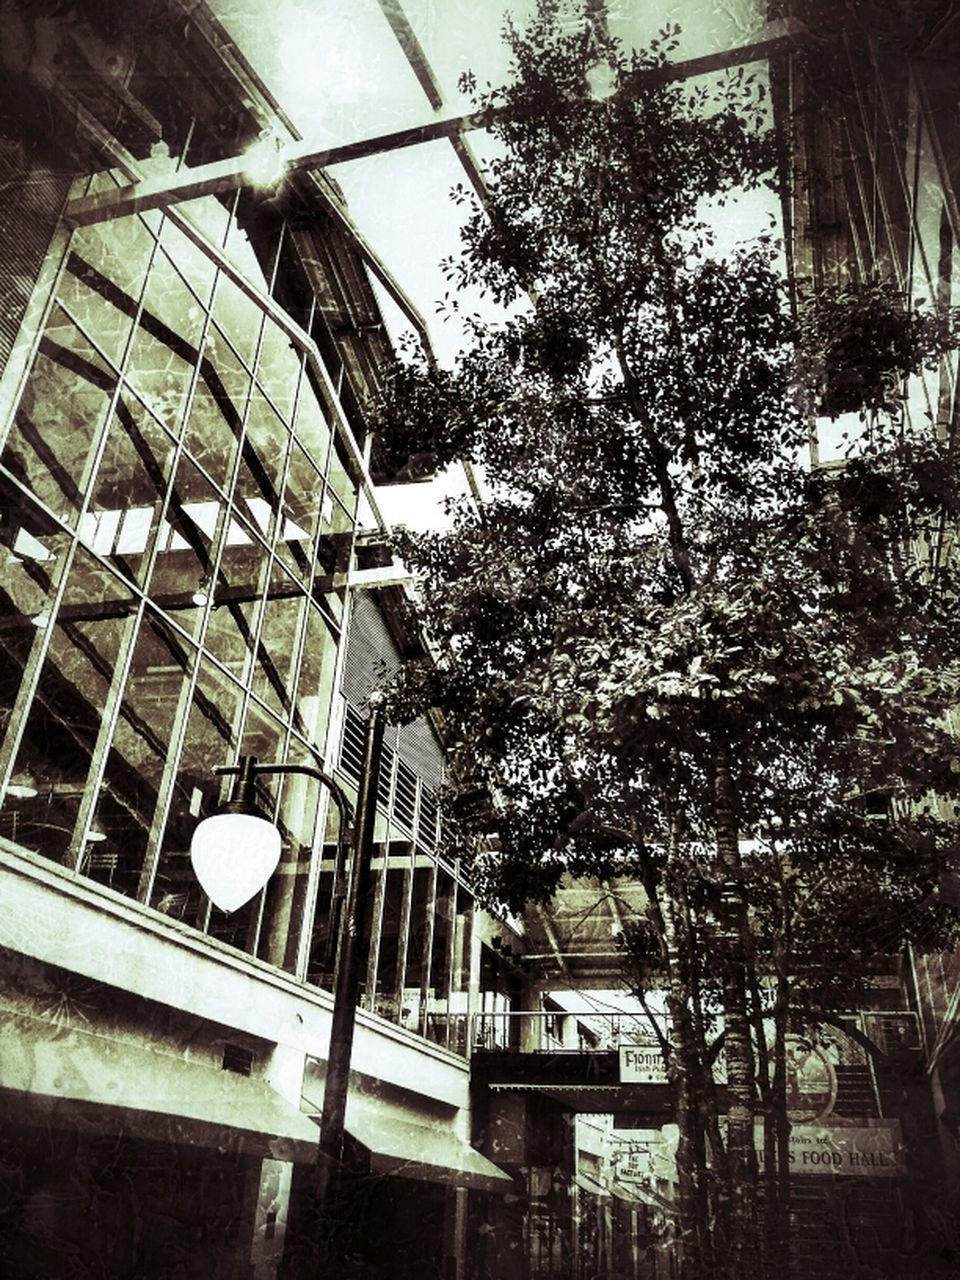 architecture, built structure, low angle view, no people, building exterior, day, tree, outdoors